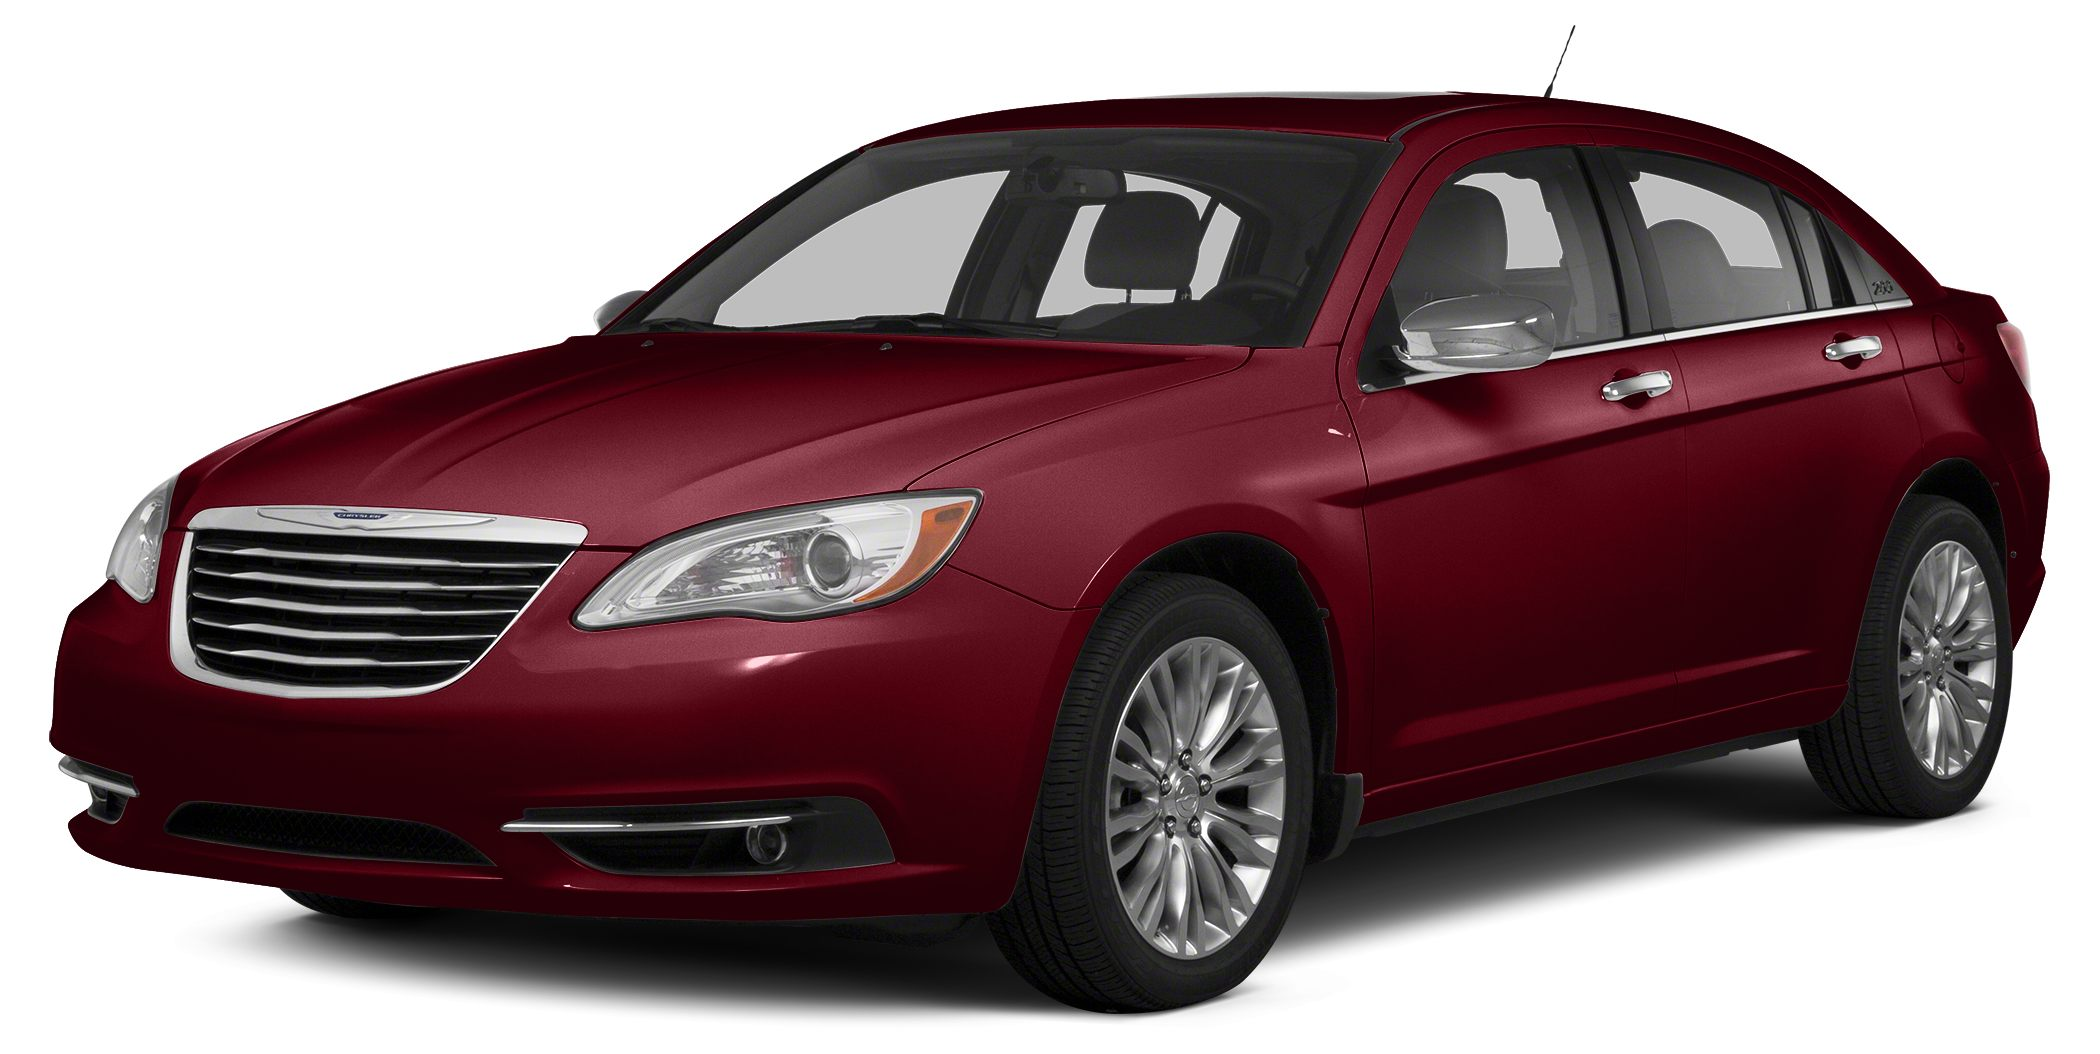 2014 Chrysler 200 LX OUR PRICESYoure probably wondering why our prices are so much lower than th